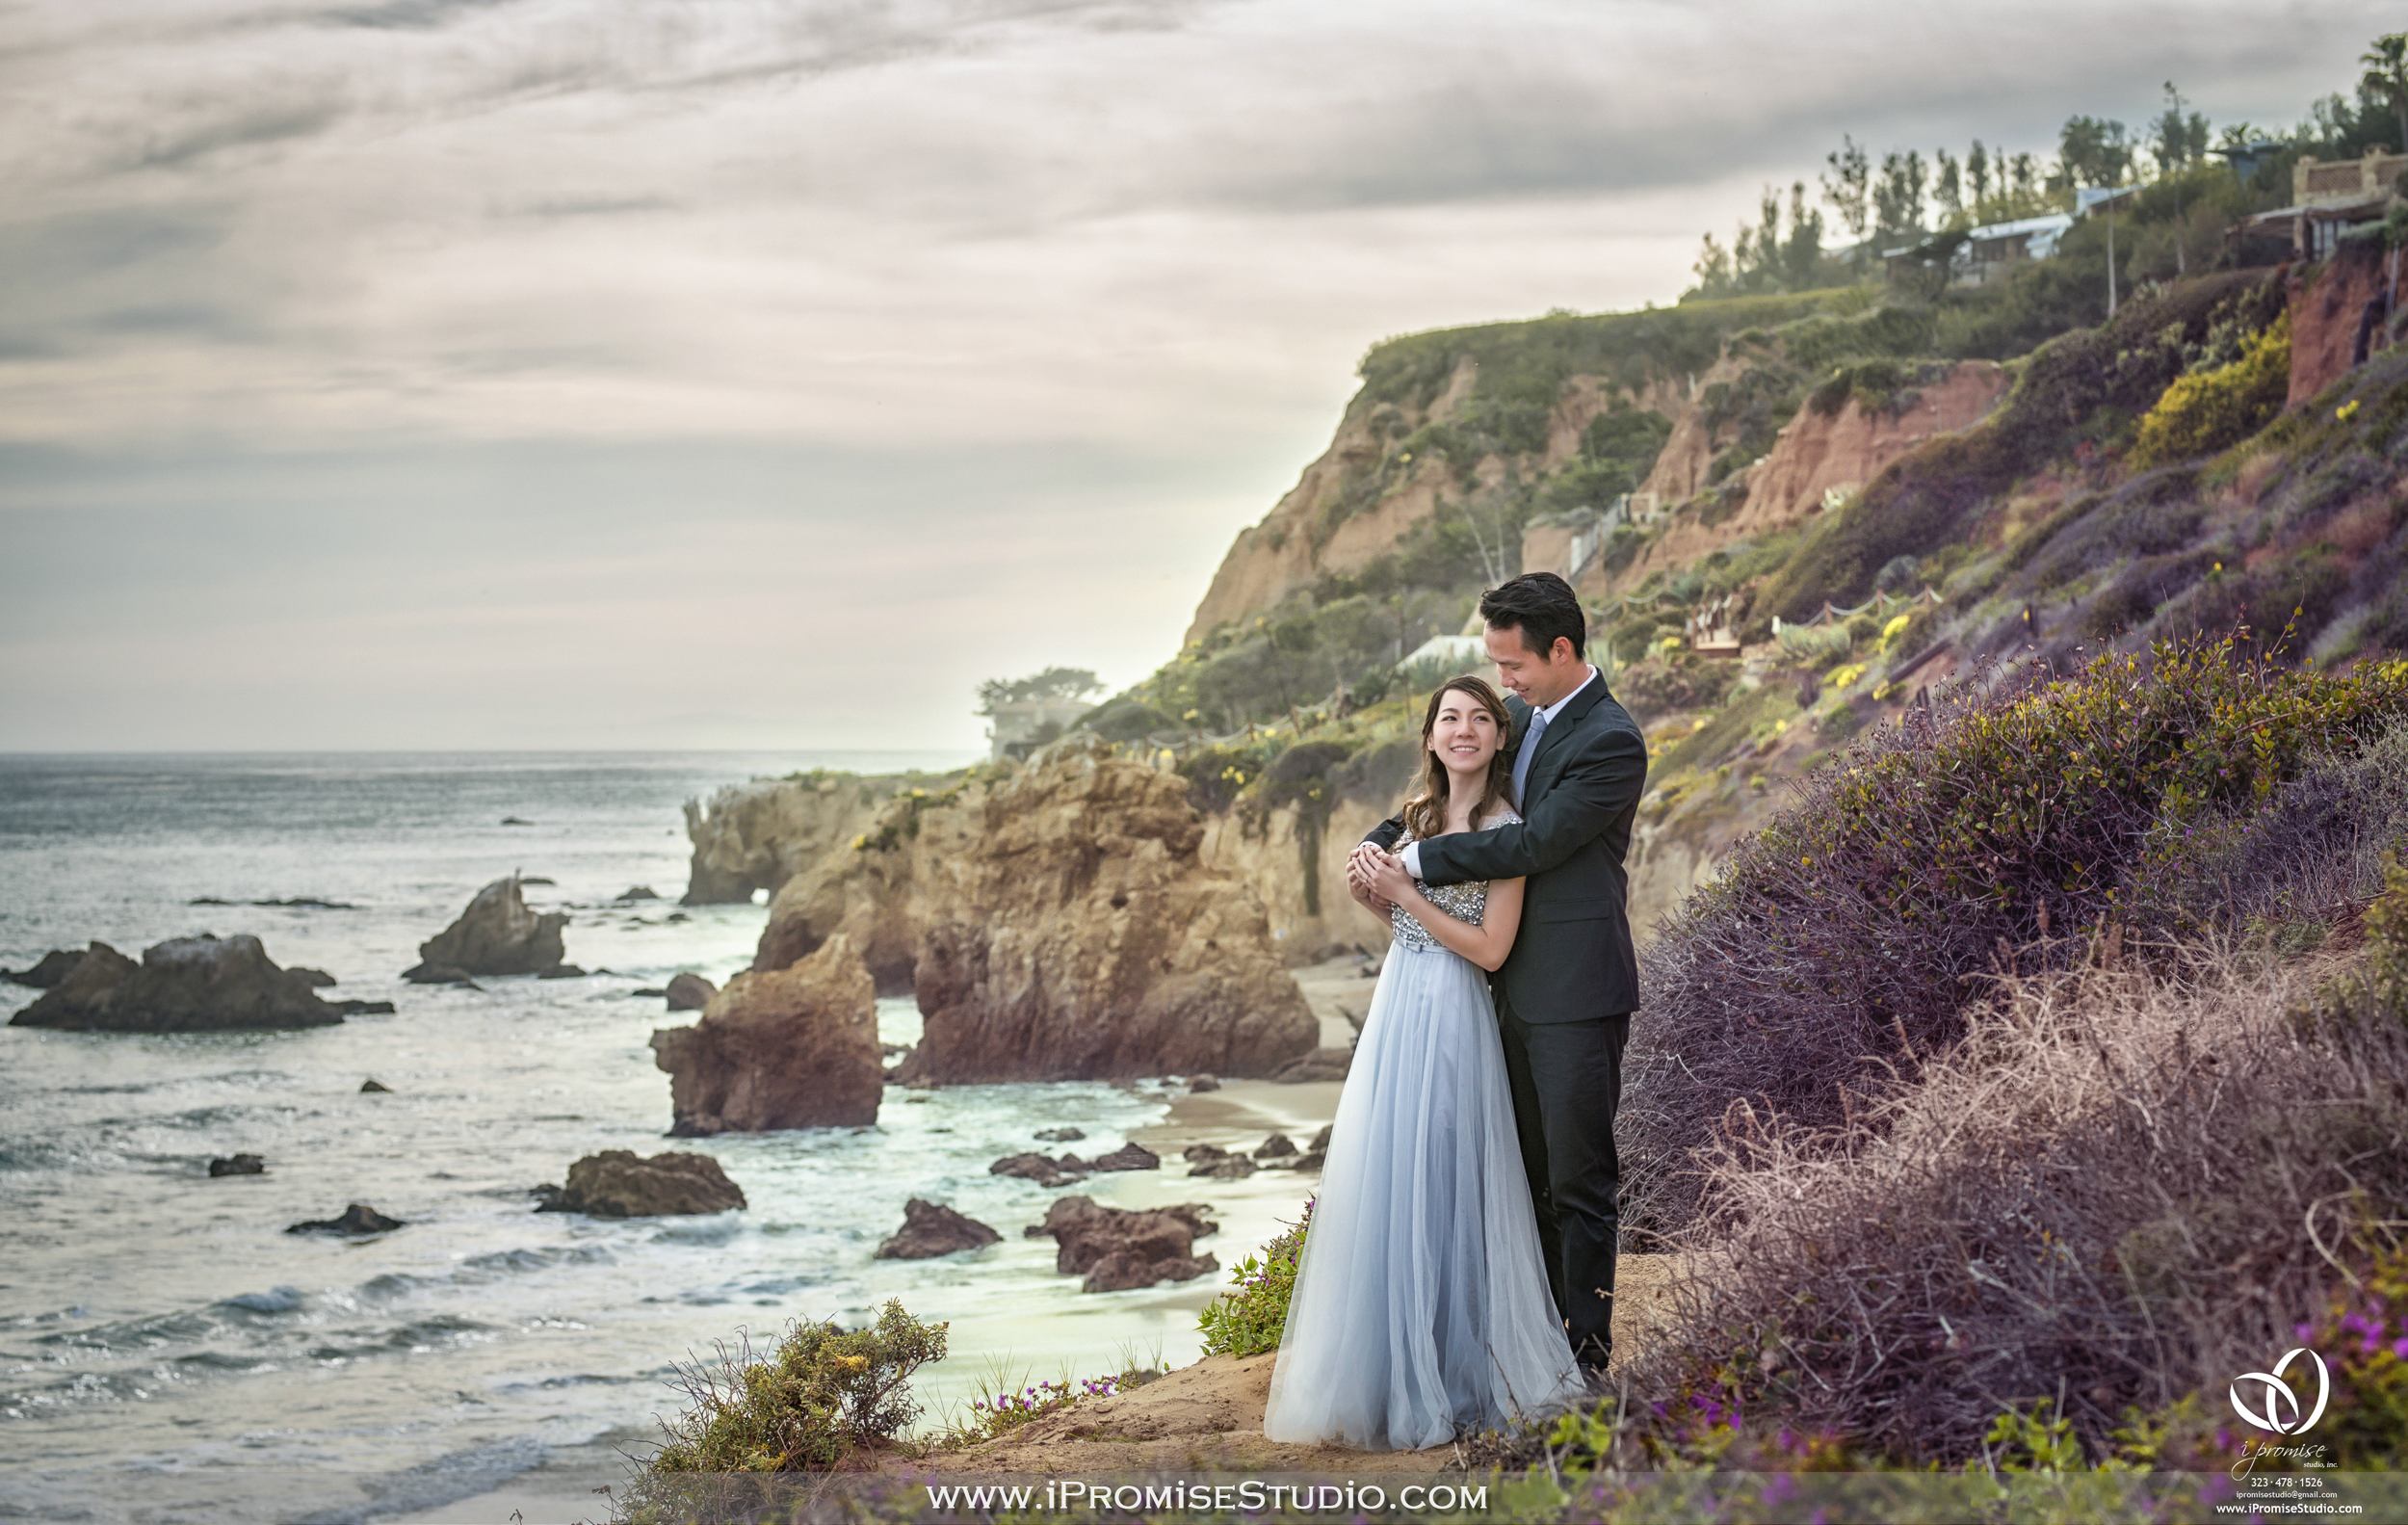 California CA-1 Freeway Highway Cliff Bridge - Engagement Wedding 02.JPG